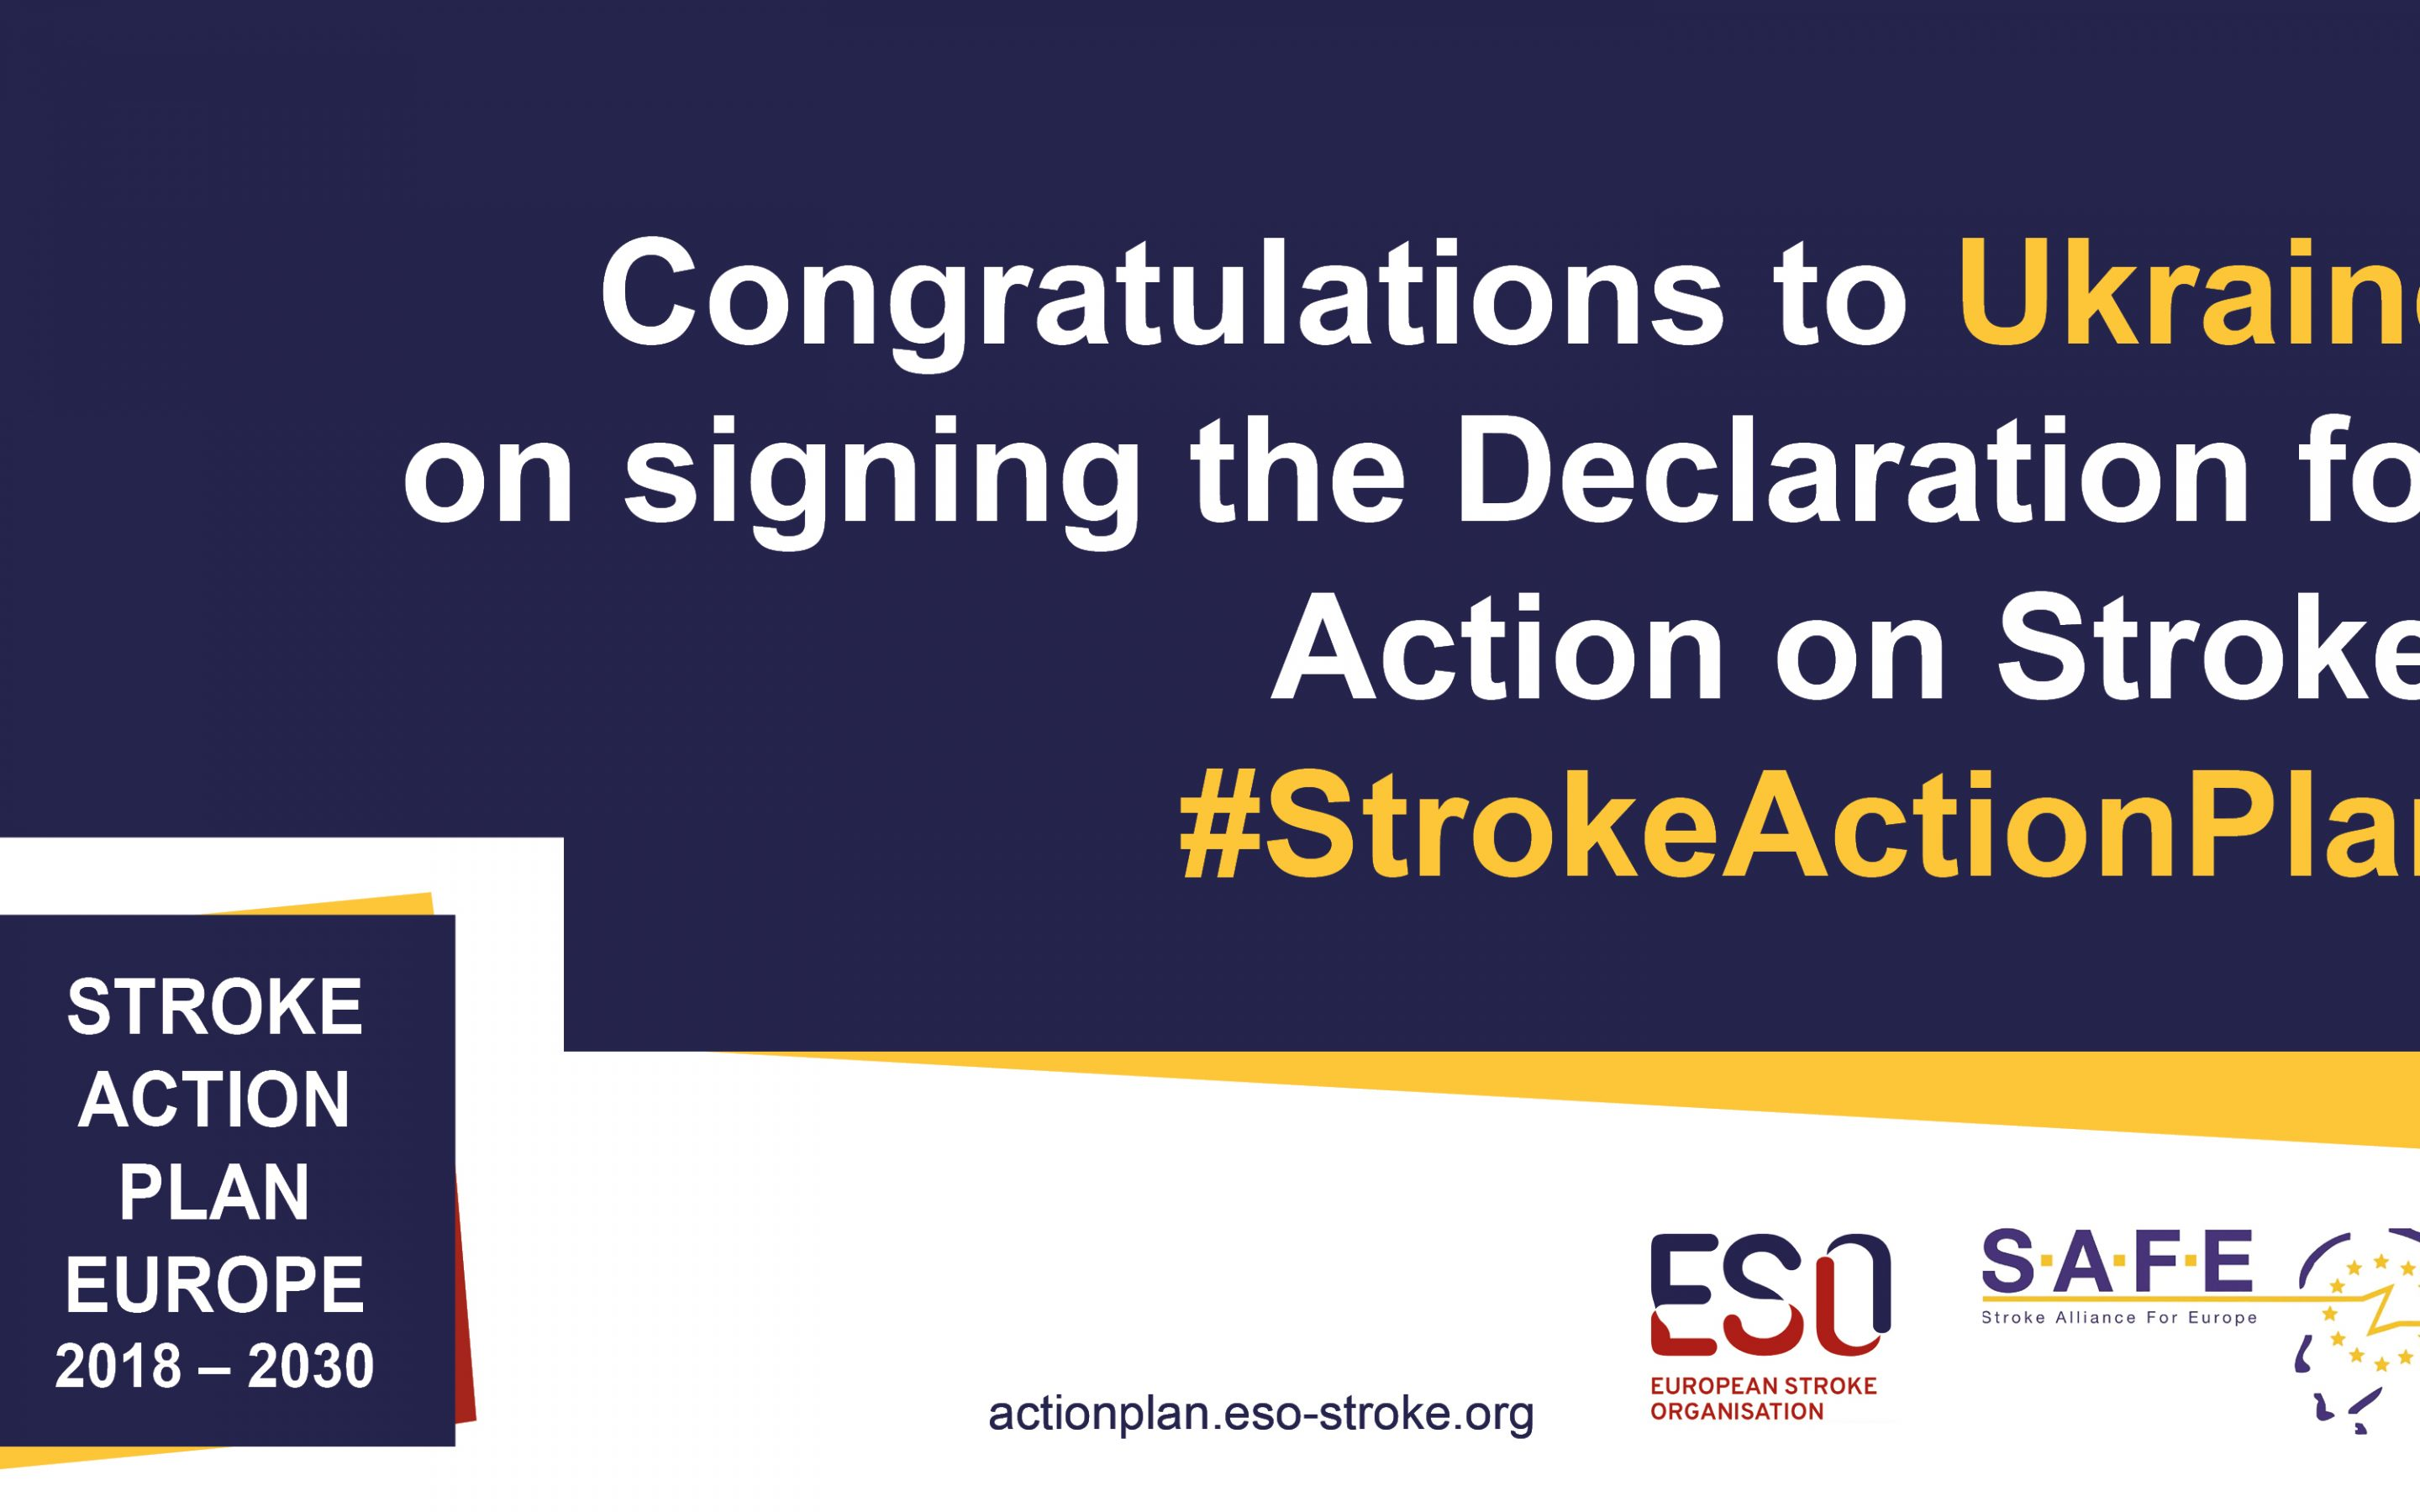 Lithuania joinsUkraineinsigningthe Stroke Action Plan for Europe Declaration